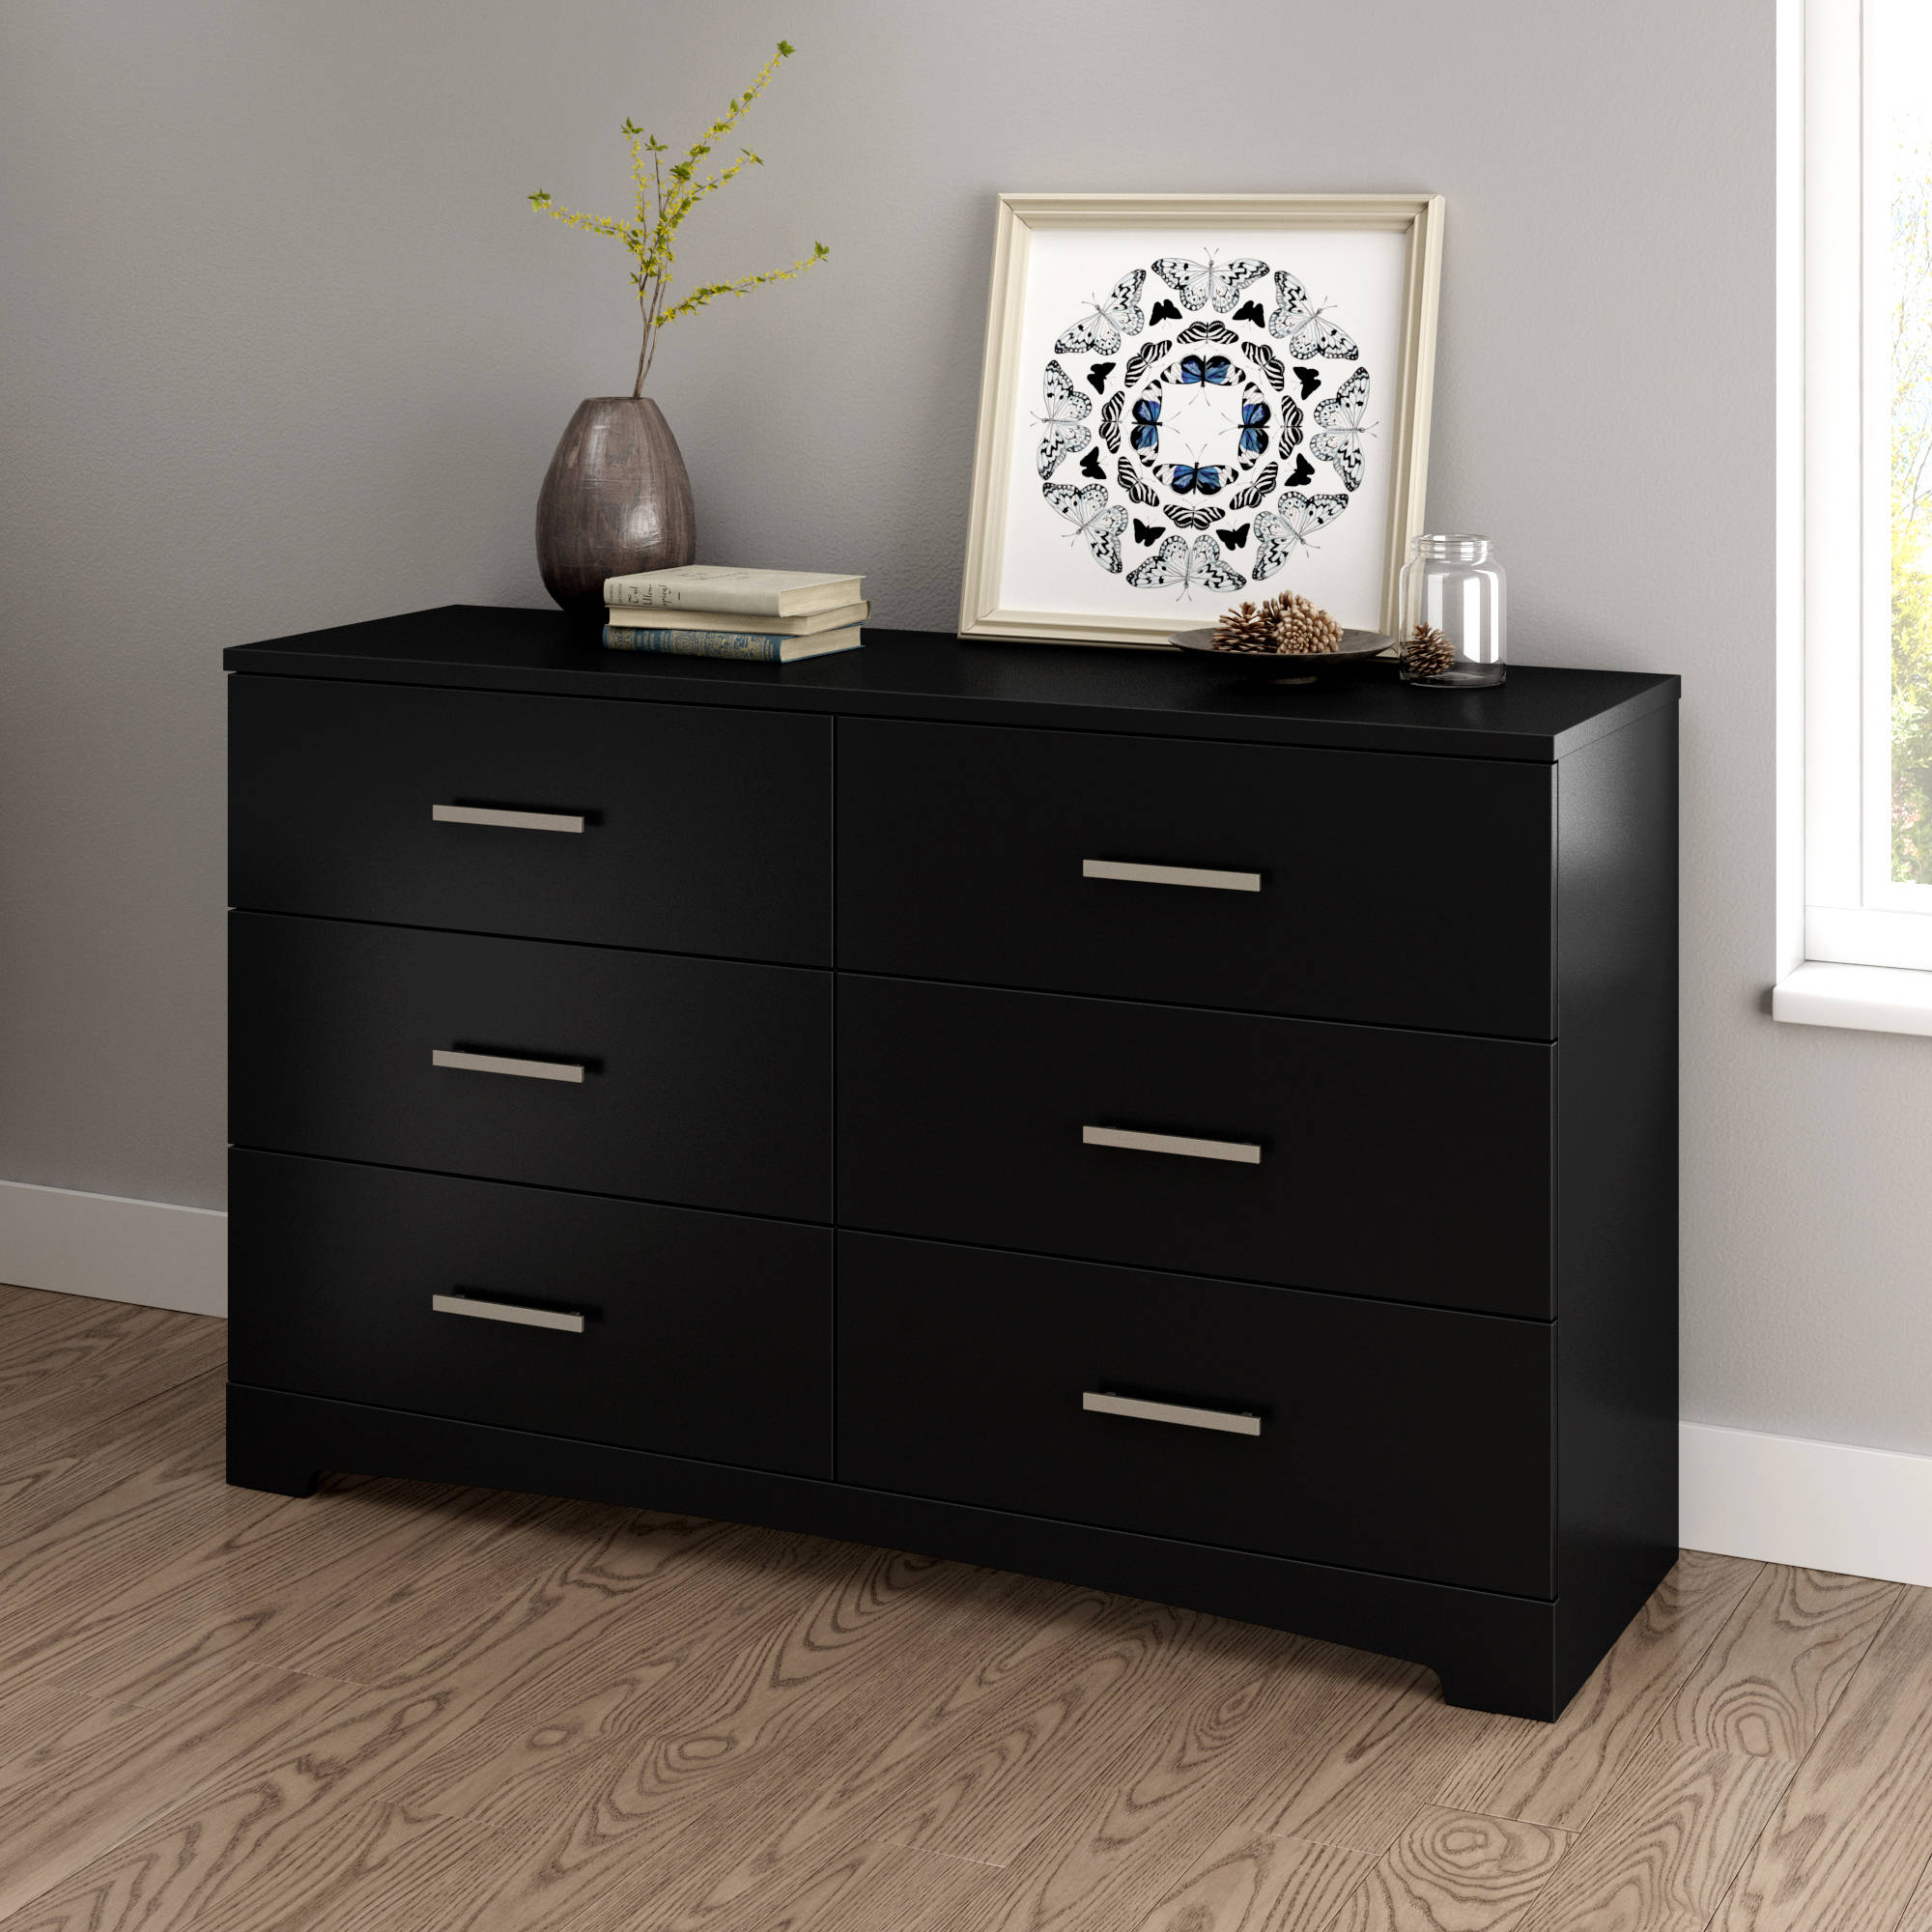 south shore soho 6 drawer double dresser multiple finishes. Black Bedroom Furniture Sets. Home Design Ideas